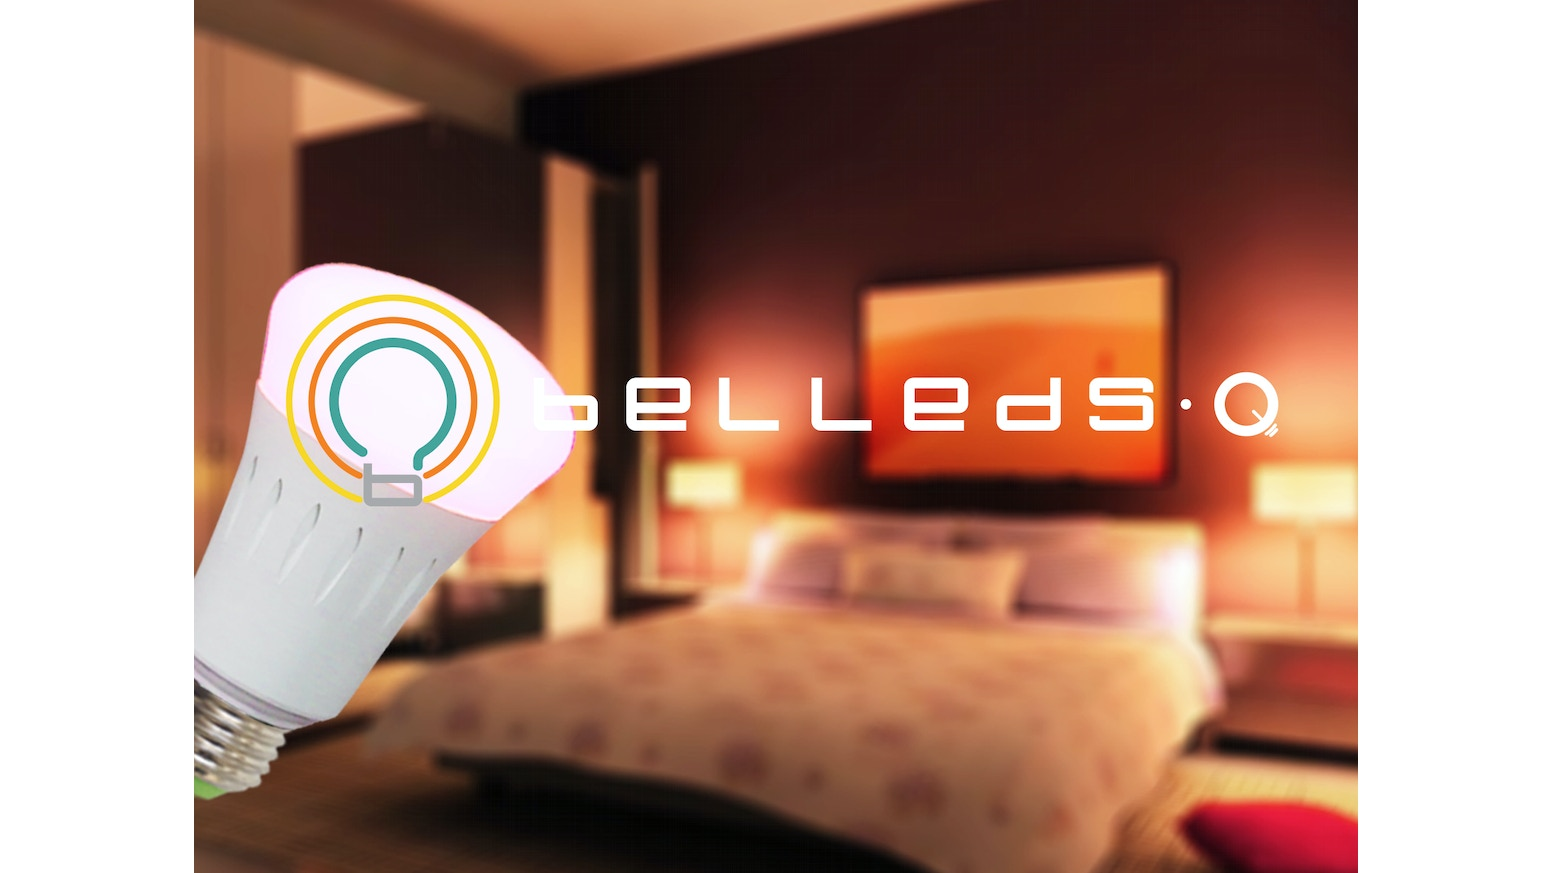 Led night light kickstarter - Our System Integrates Wireless Smart Led Bulbs With Streaming Music The Q Makes It Easy To Create And Share Your Own Light Shows